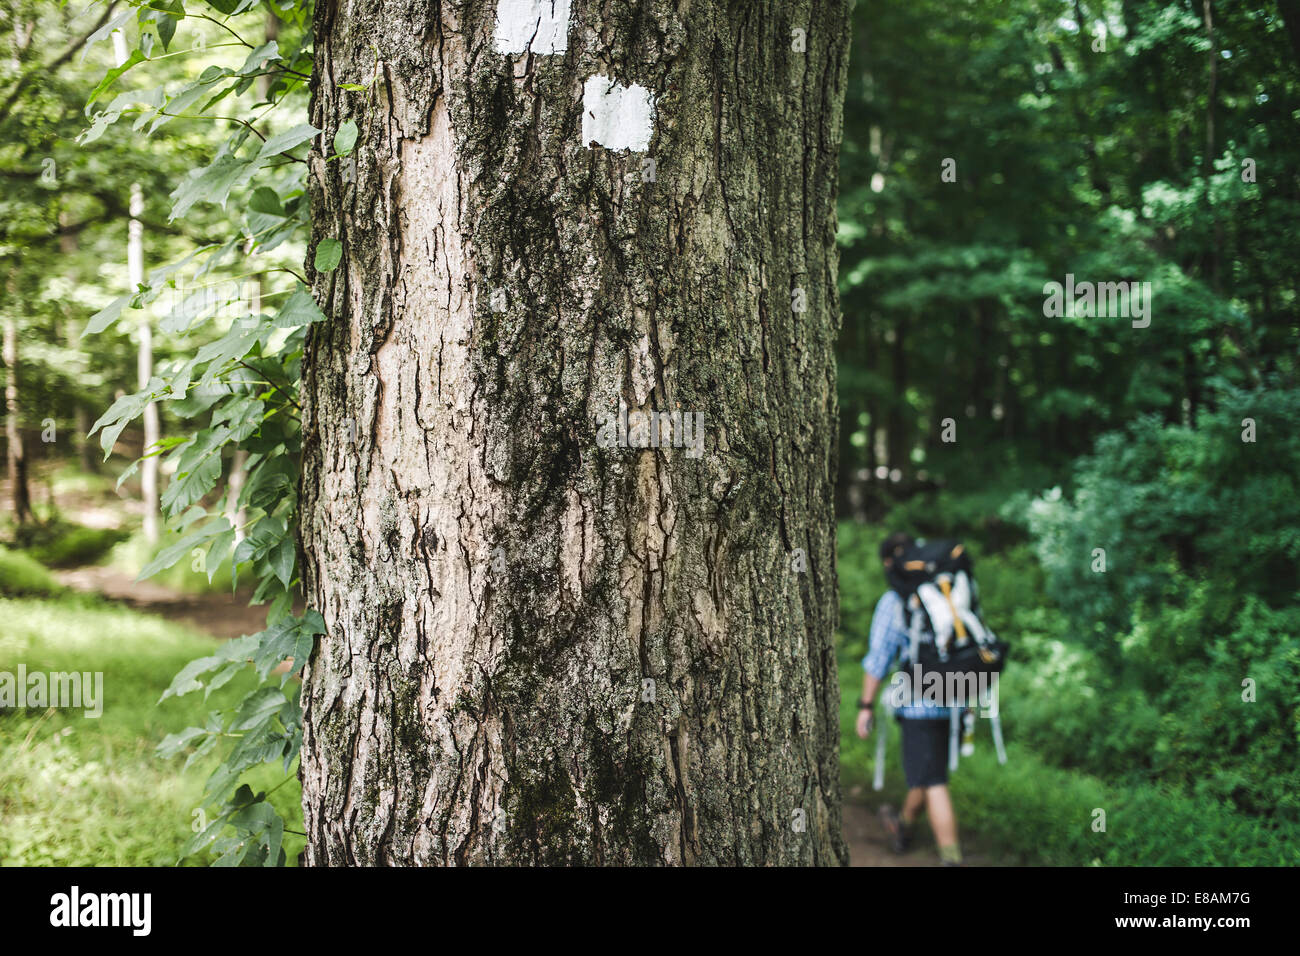 Man hiking in forest with tree trunk in foreground - Stock Image